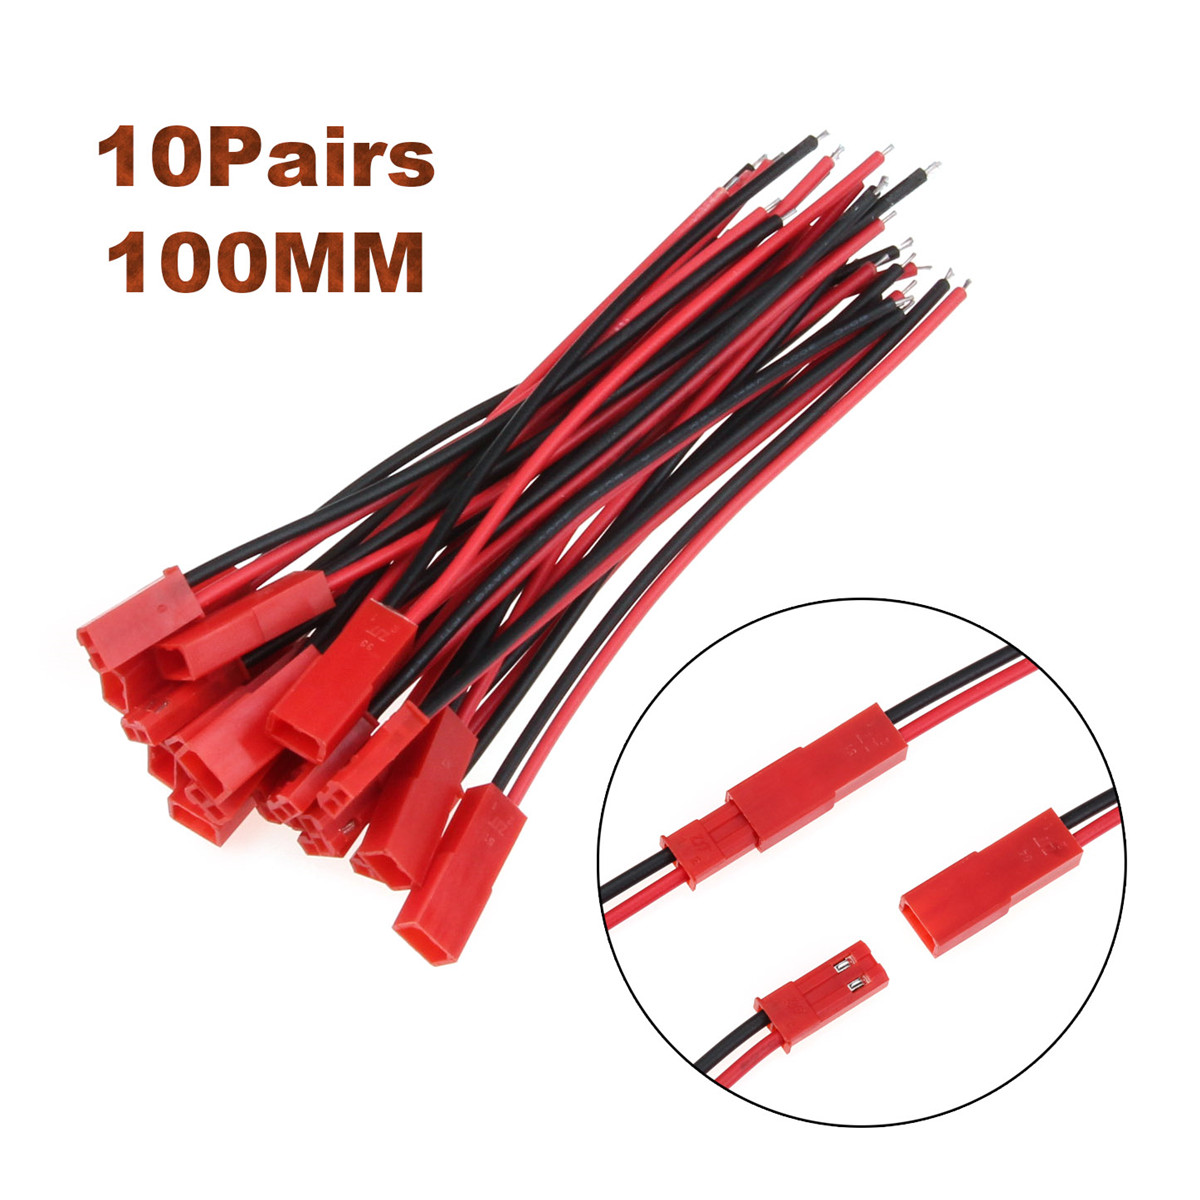 10 Pairs 100mm (10cm) Male/Female 2 Pin Connector JST Plug Cable For RC BEC Battery Helicopter DIY FPV Drone Quadcopter 50pcs 25pairs 2 pin jst 100mm pitch 2 54mm male and female wire connector plug cable for diy rc battry model